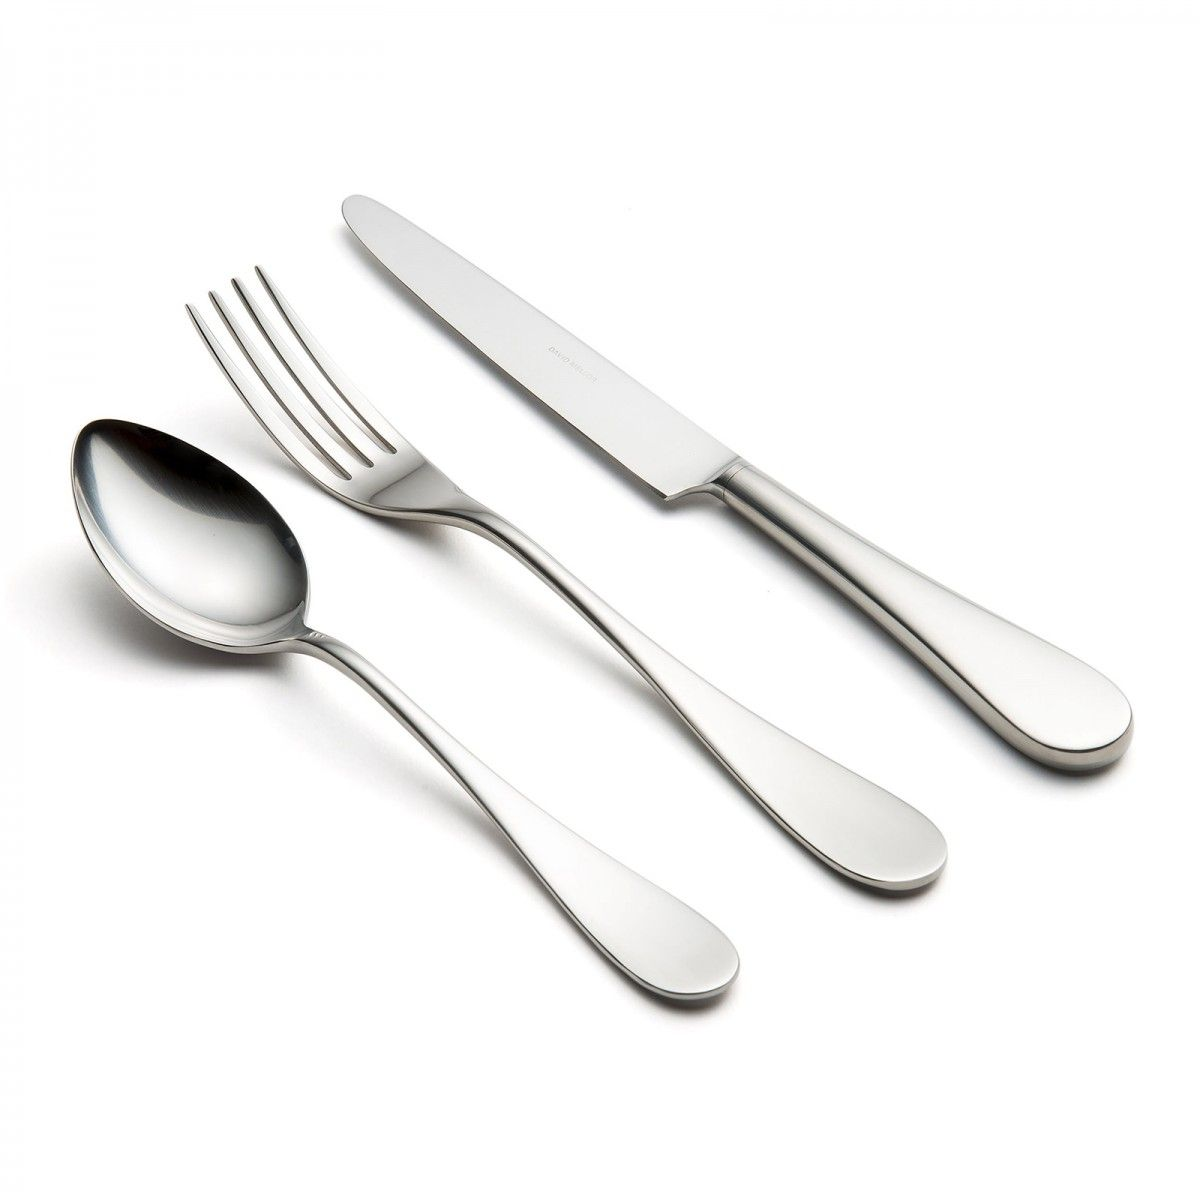 English Sterling Silver Cutlery - David Mellor Design. Commission for 10 Downing Street. #10downingstreet #cutlery #silver